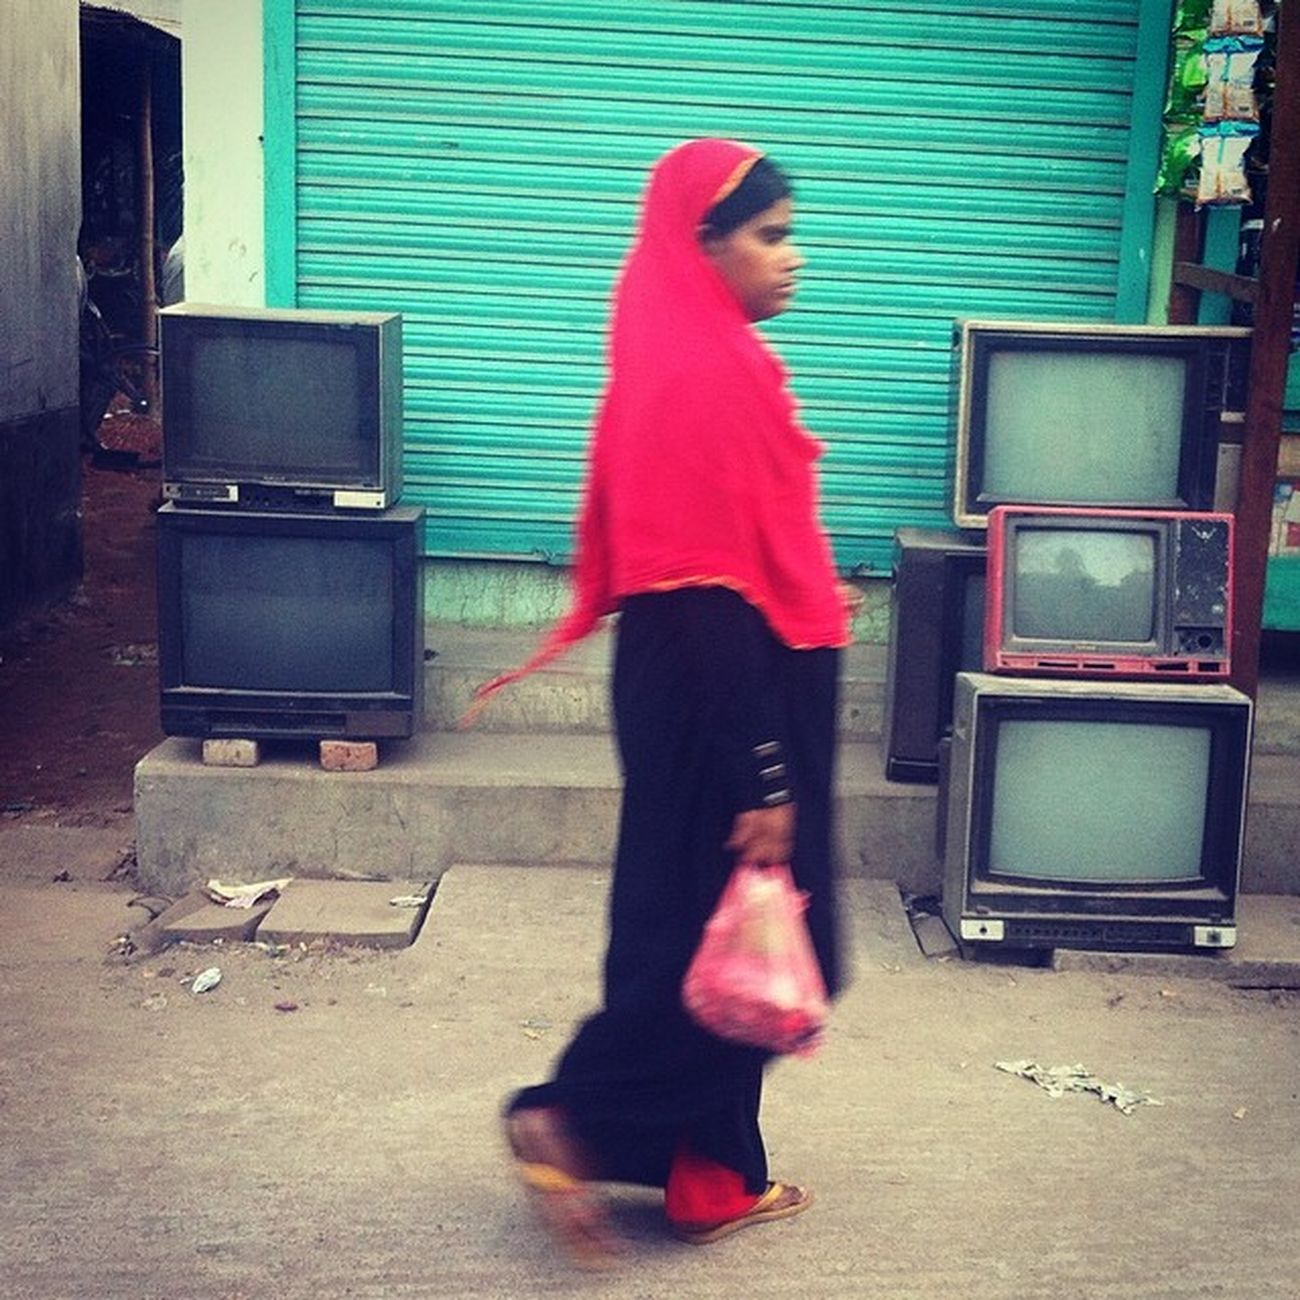 a daily life in chaktai street. Js Street Woman Tv Television Color Red Green Daily Life Photography Photojournalism Documentary Instagram Chaktai Chittagong